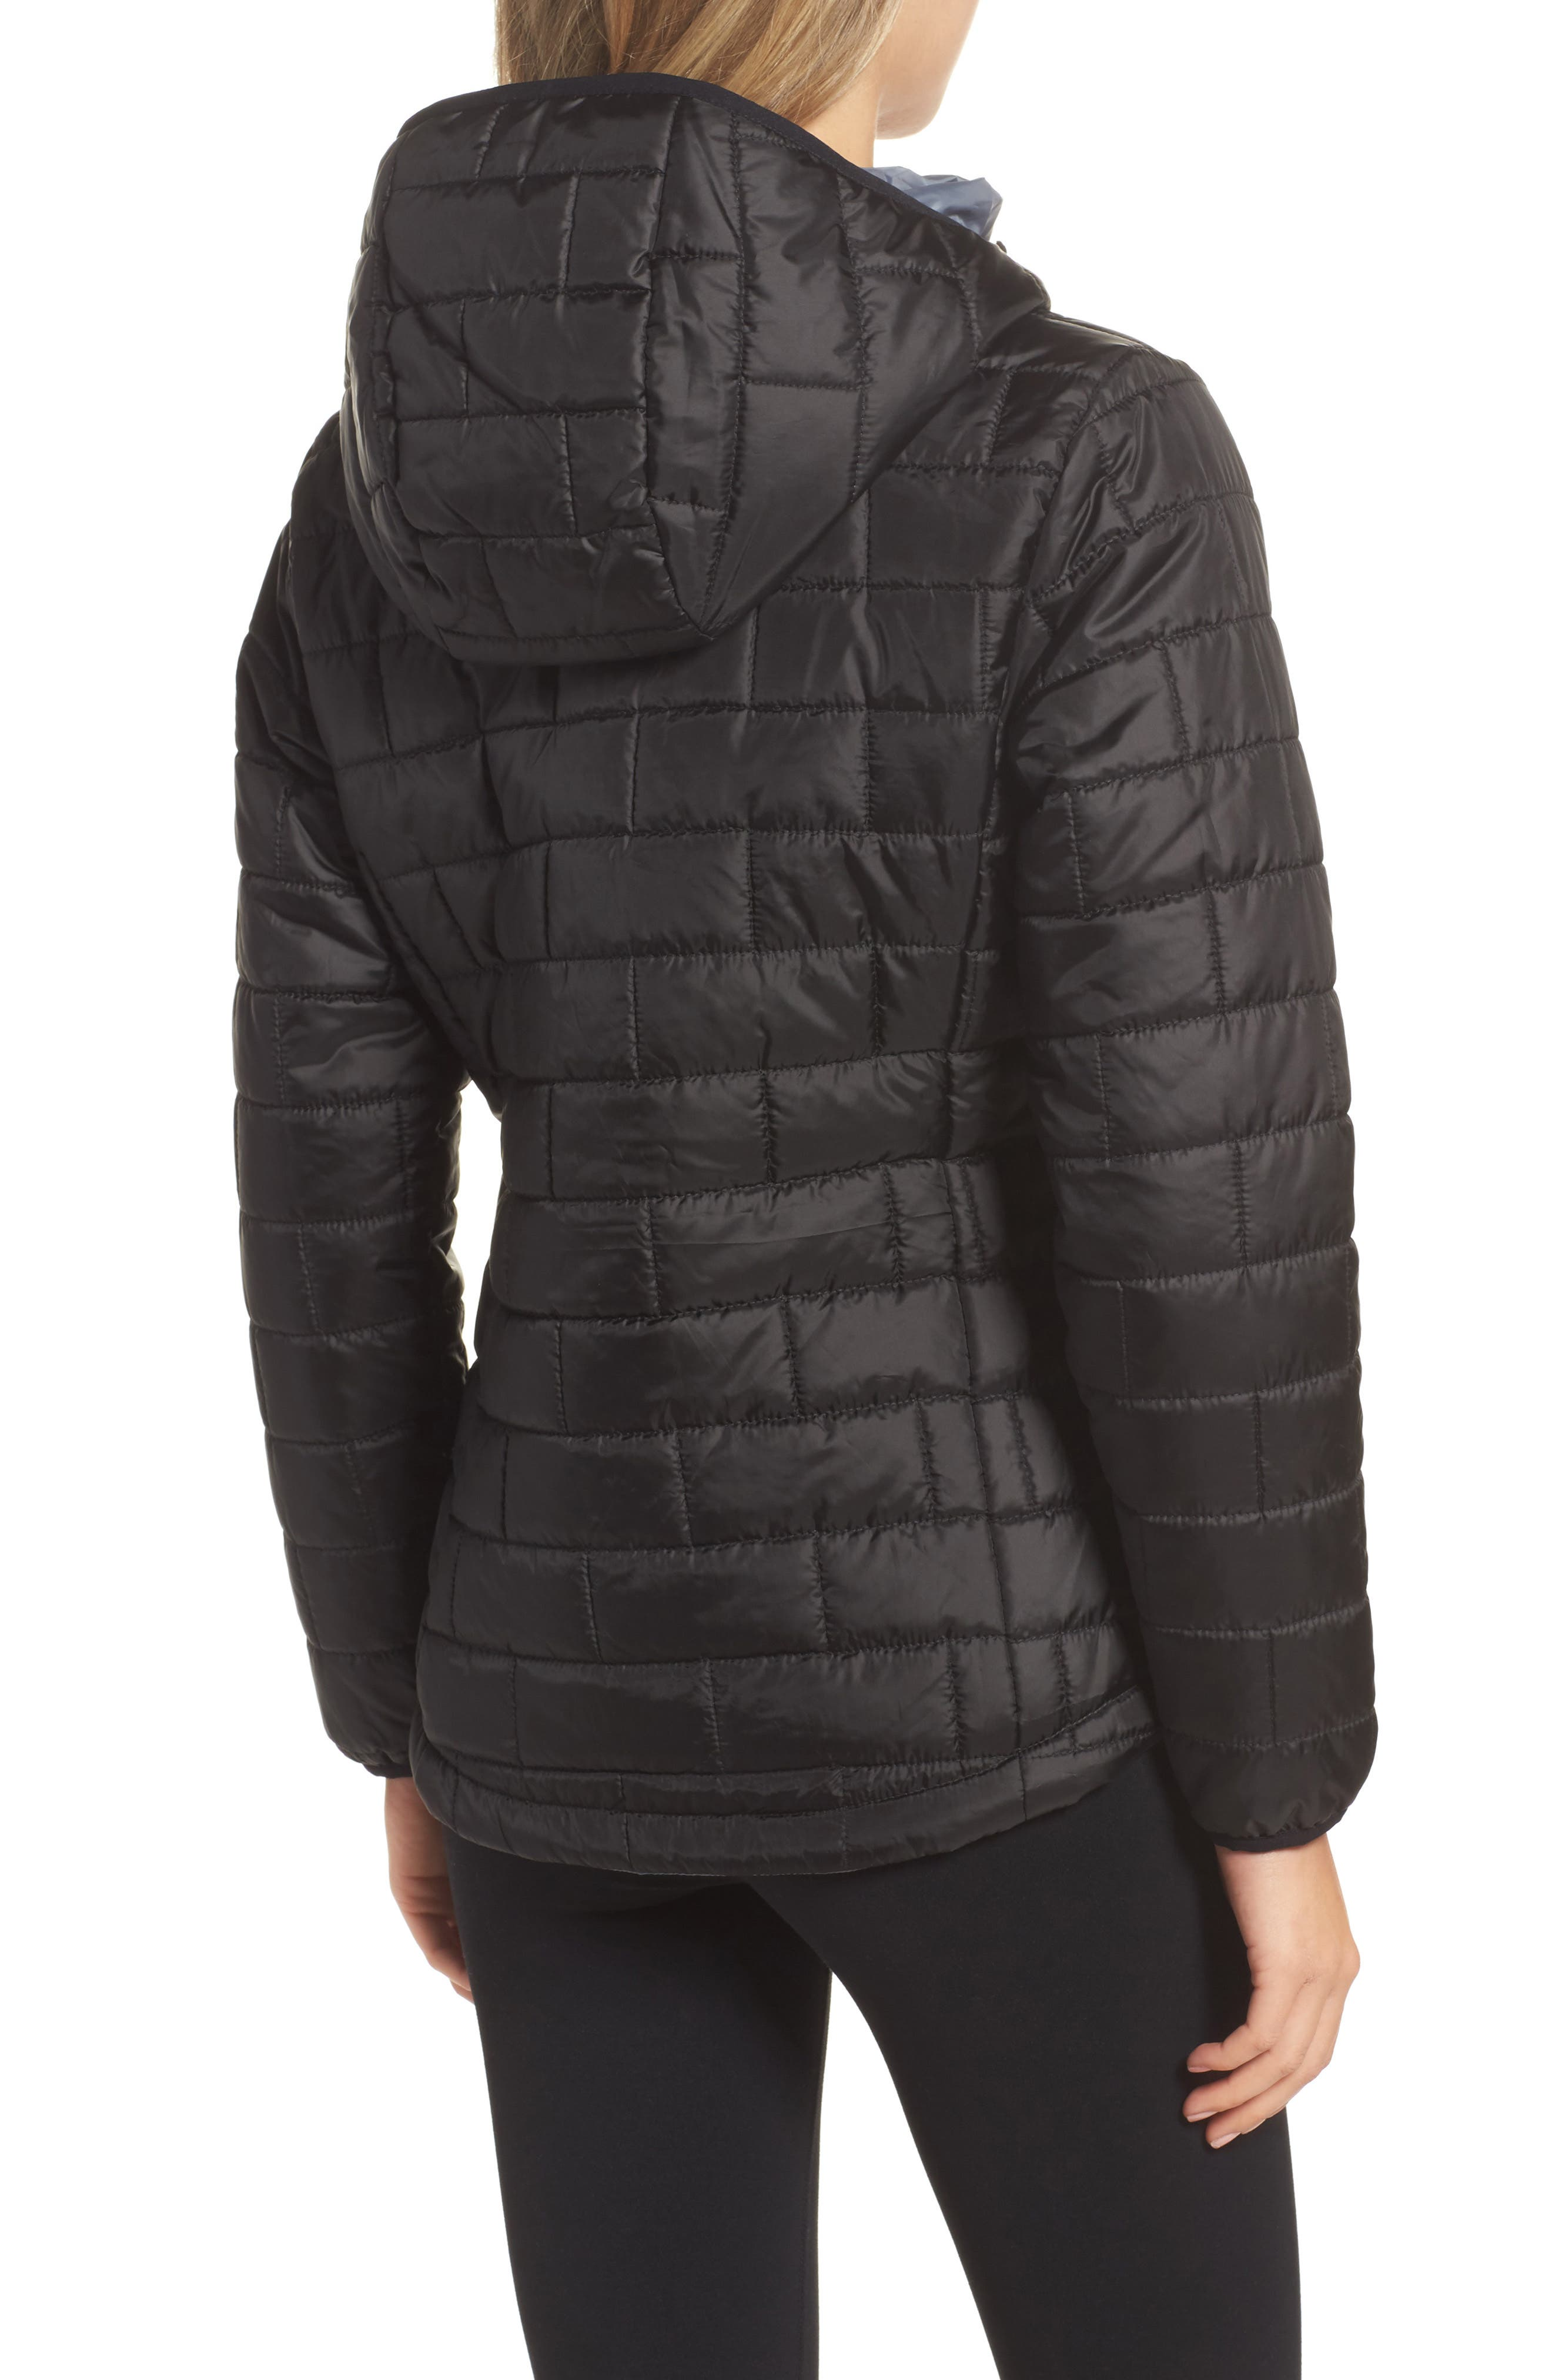 Highland Reversible Water-Resistant & Windproof Quilted Puffer Jacket,                             Alternate thumbnail 2, color,                             Black/ Gunmetal